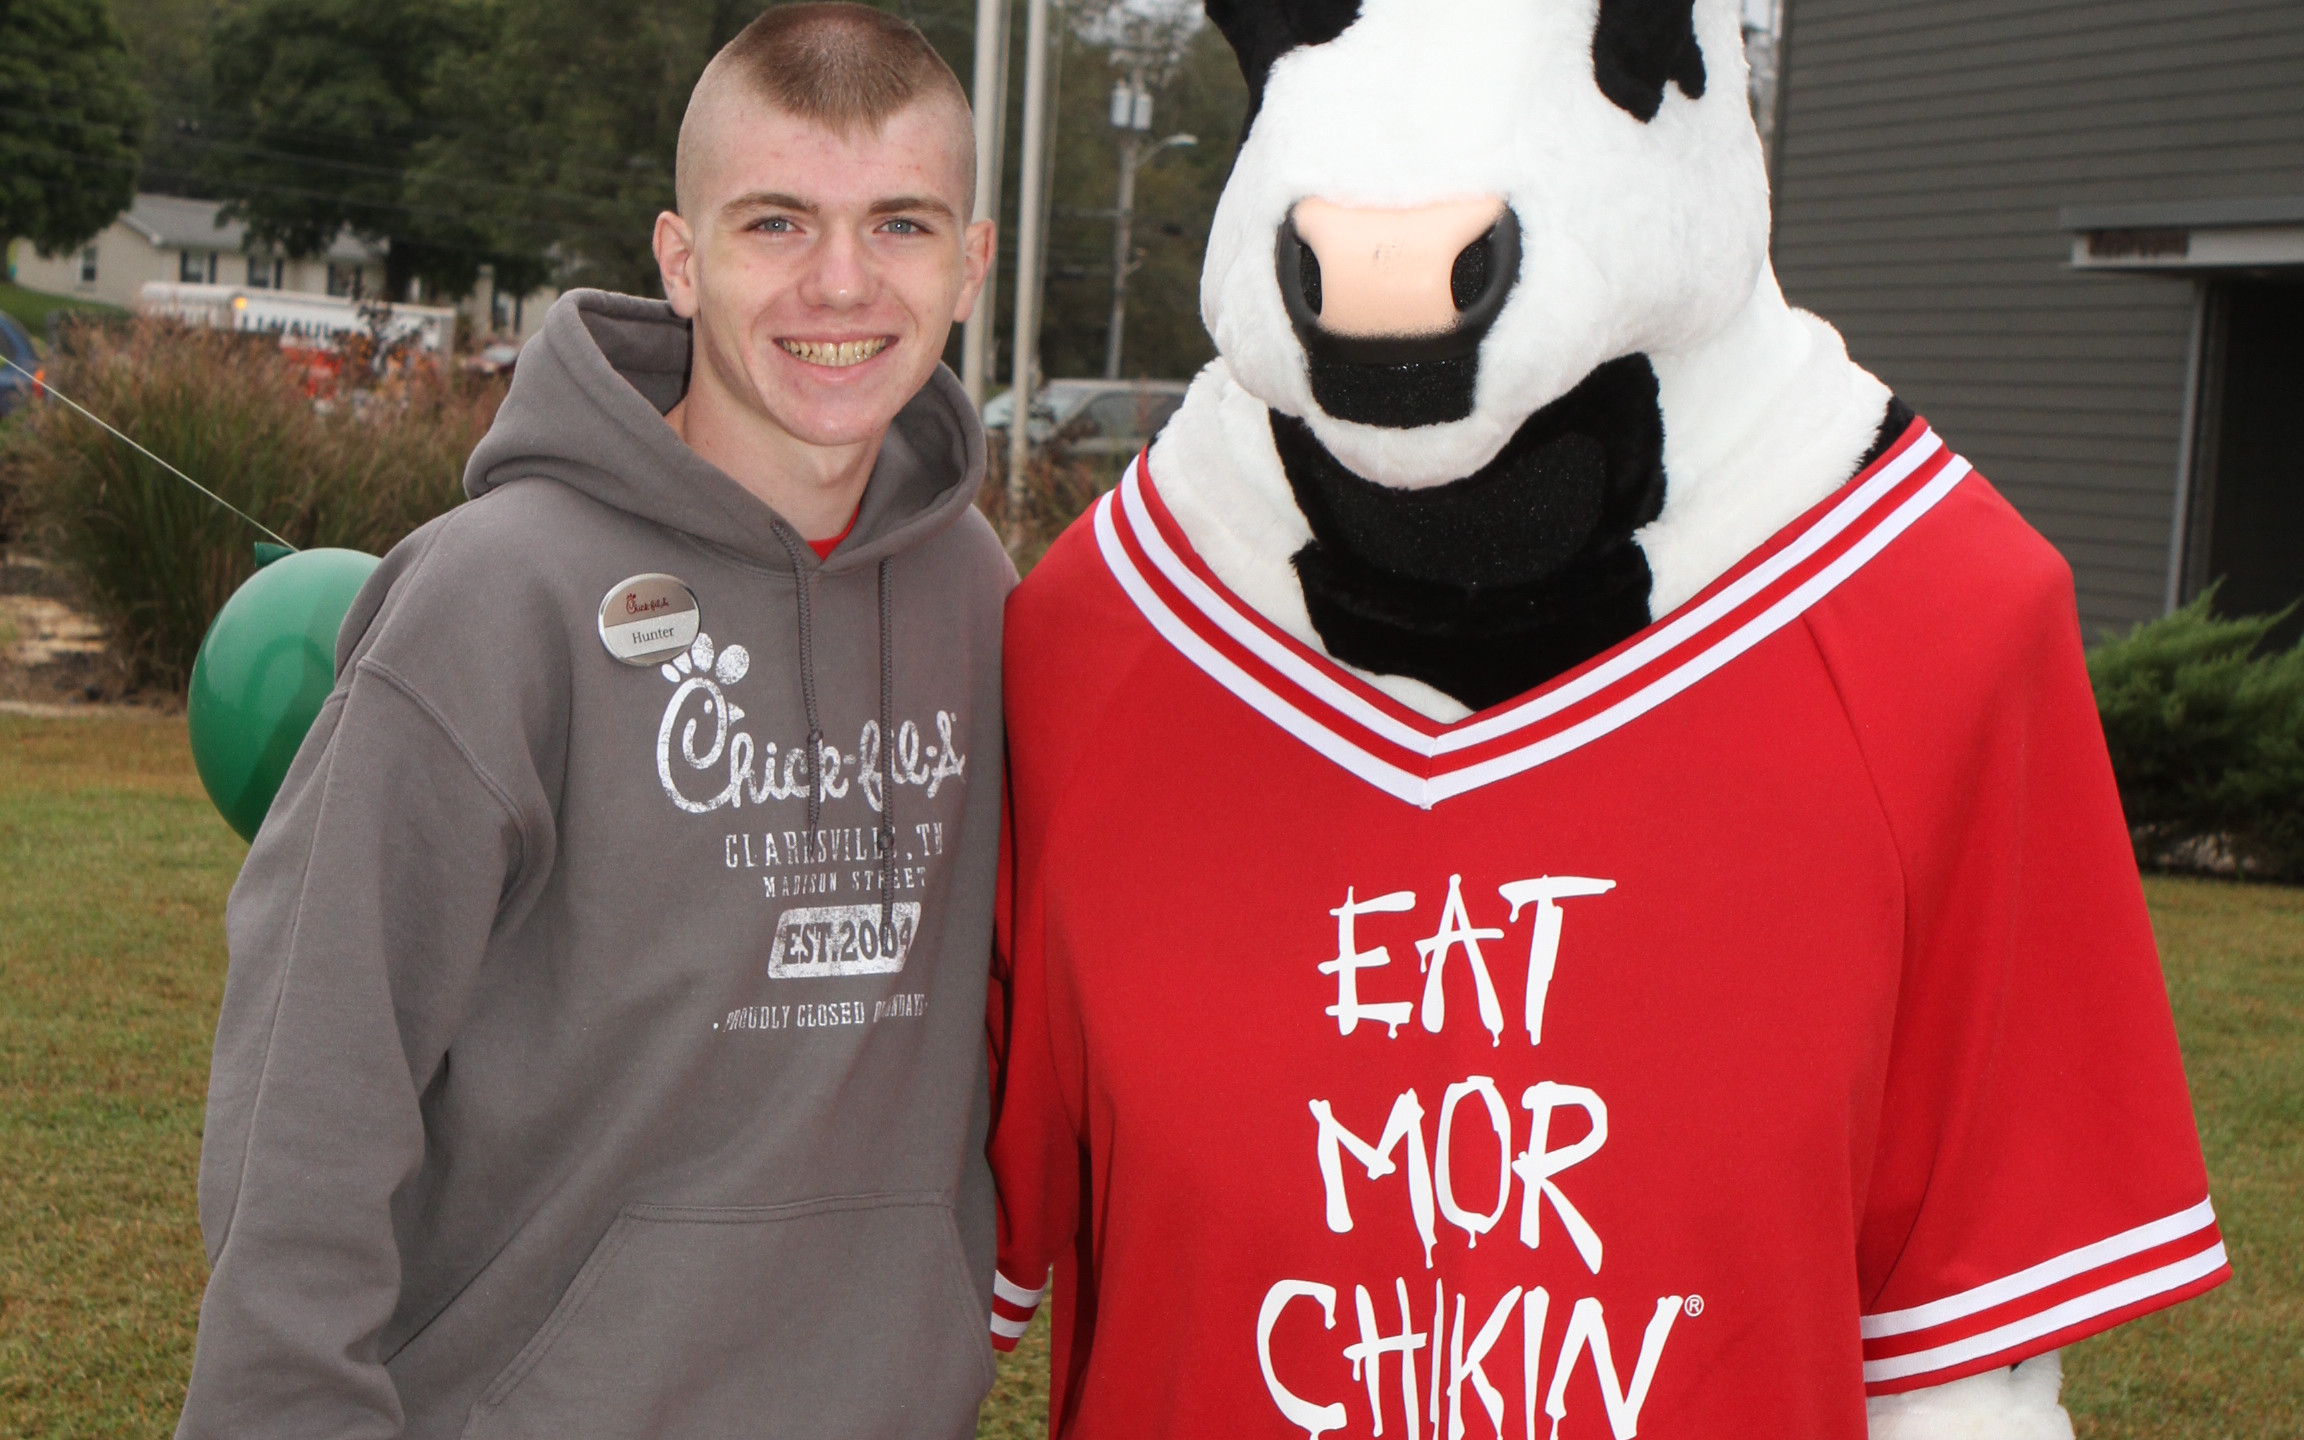 Hunter Lynch with the Chick-fil-A cow